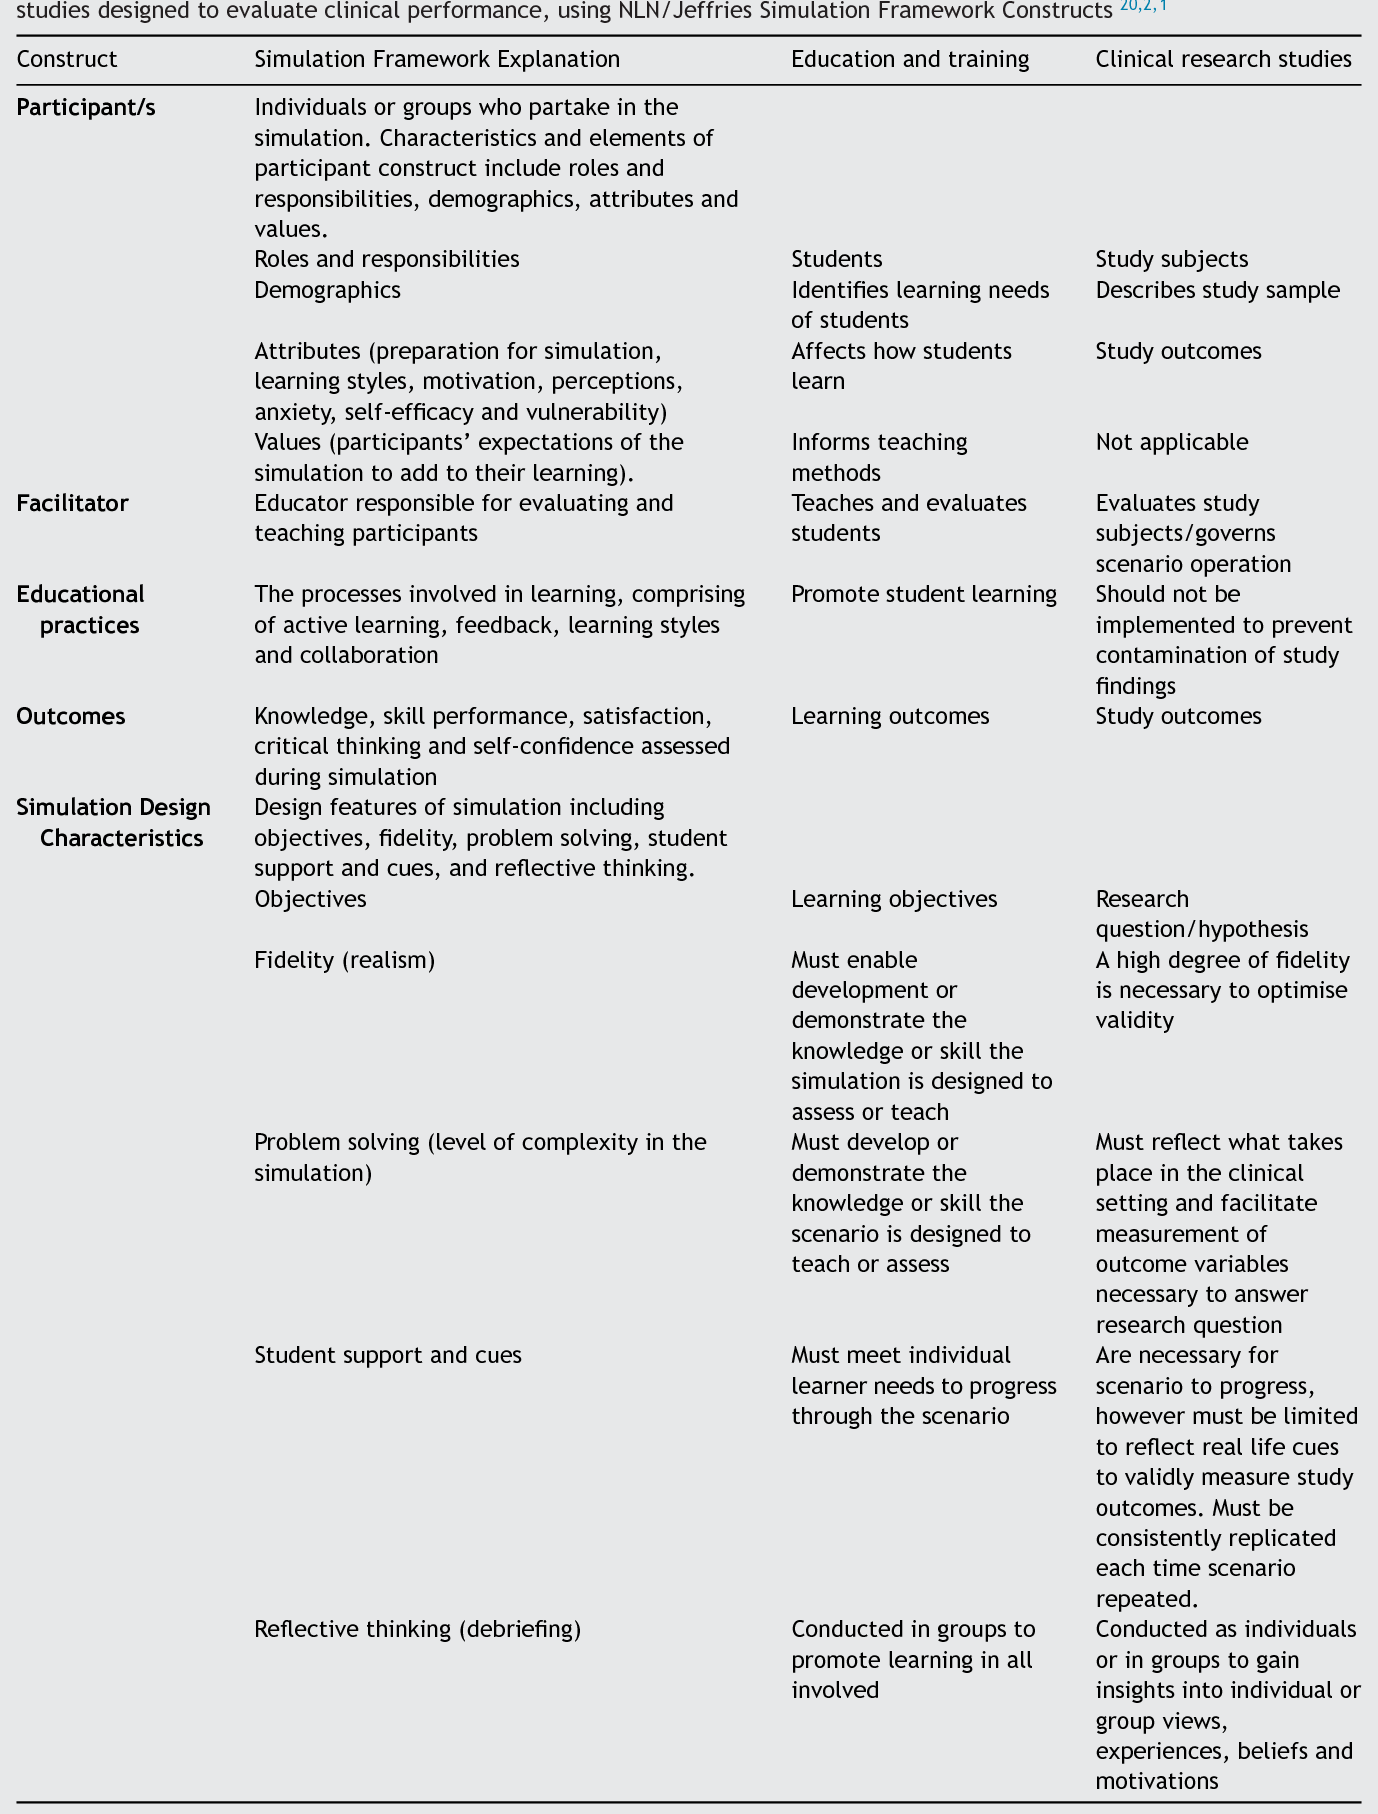 Table 1 Characteristics of simulation design when implemented in education and training compared with clinical research studies designed to evaluate clinical performance, using NLN/Jeffries Simulation Framework Constructs 20,2,1